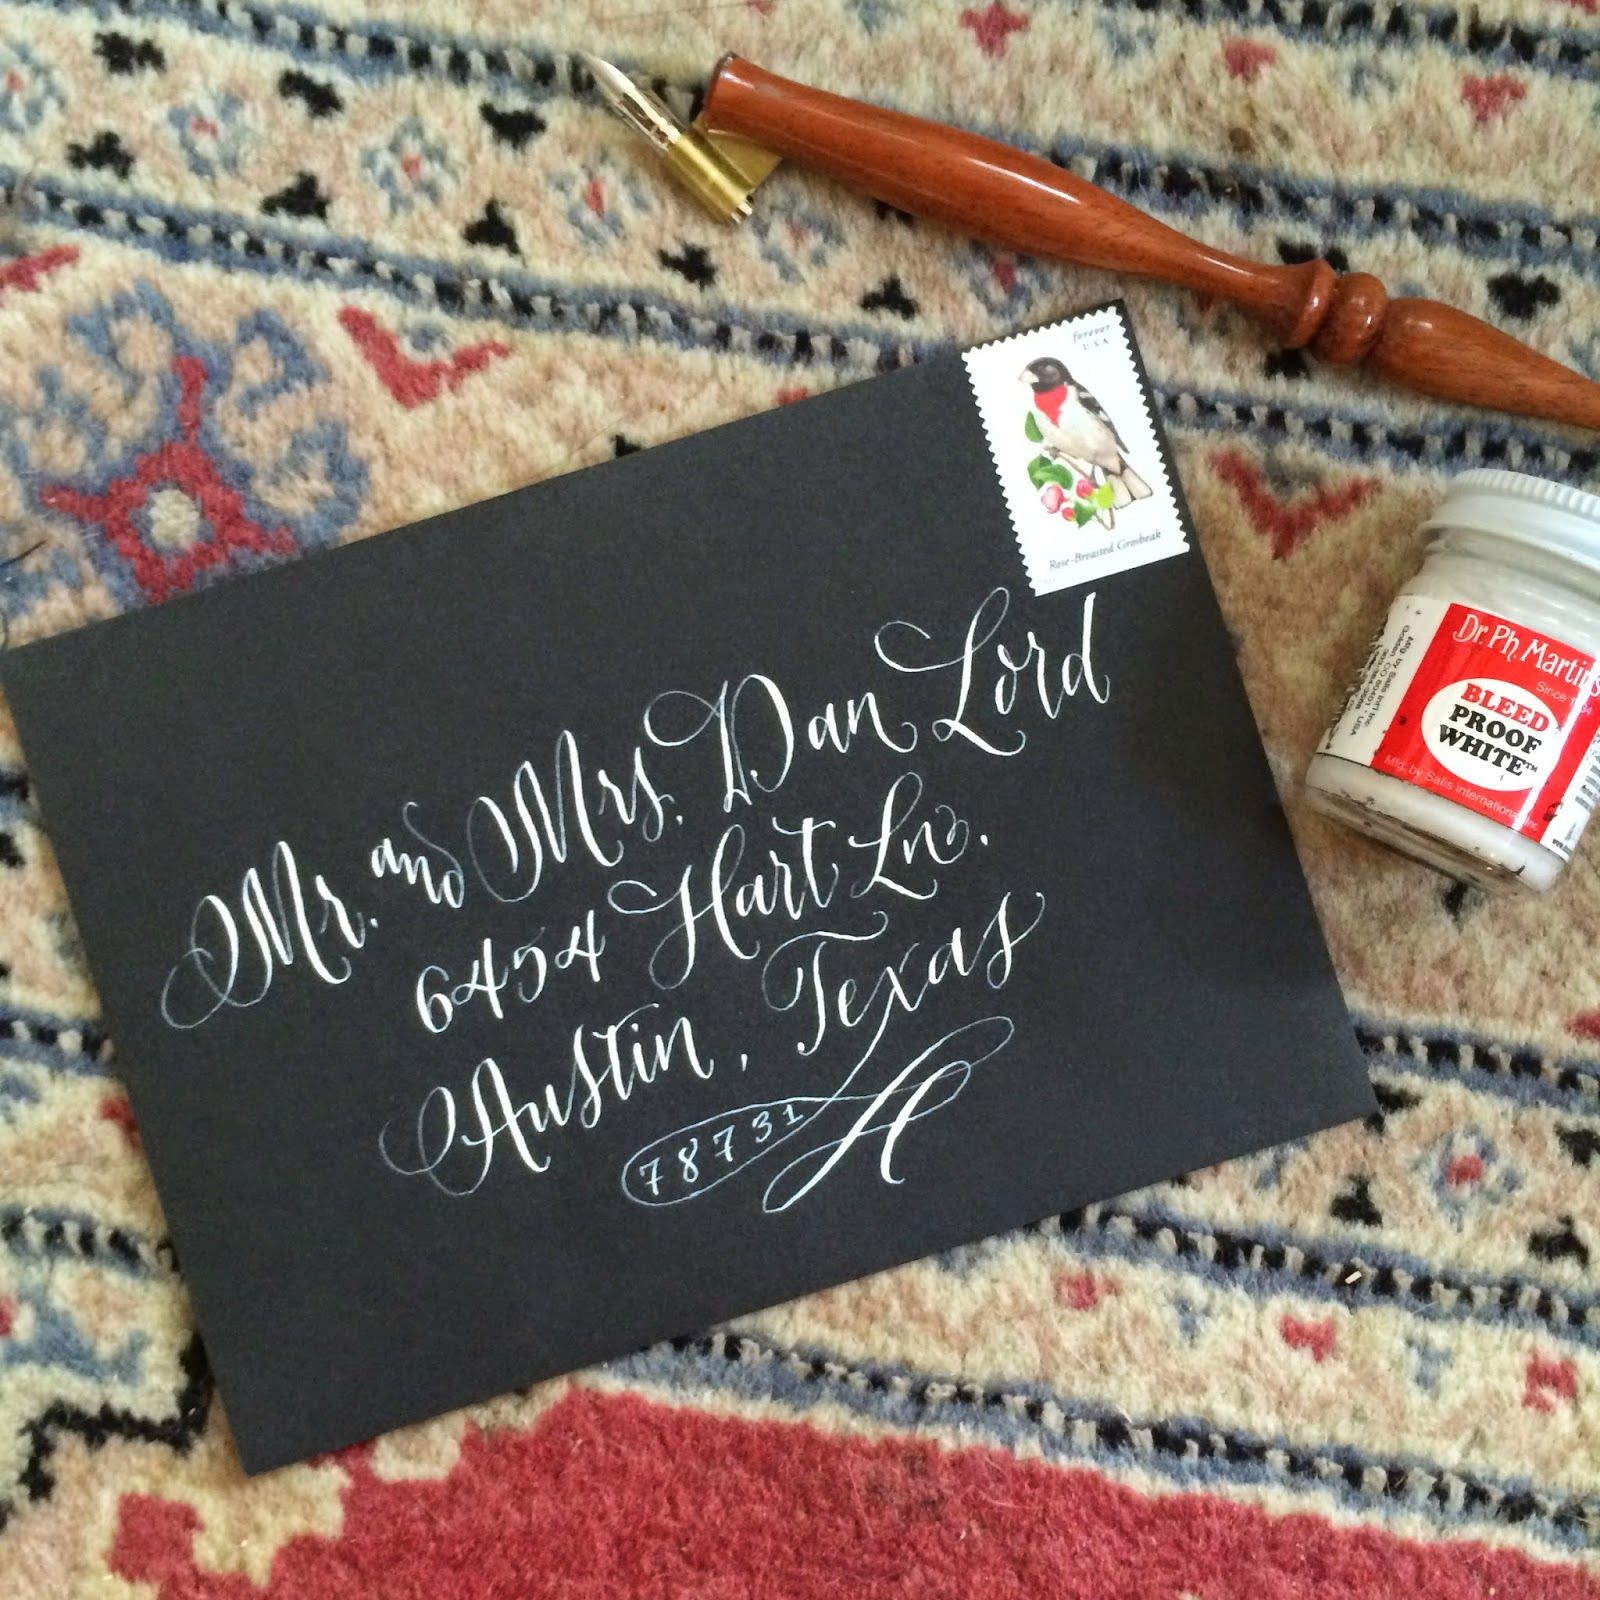 Antiquaria: Calligraphy in Action | Envelope Addressing in White!